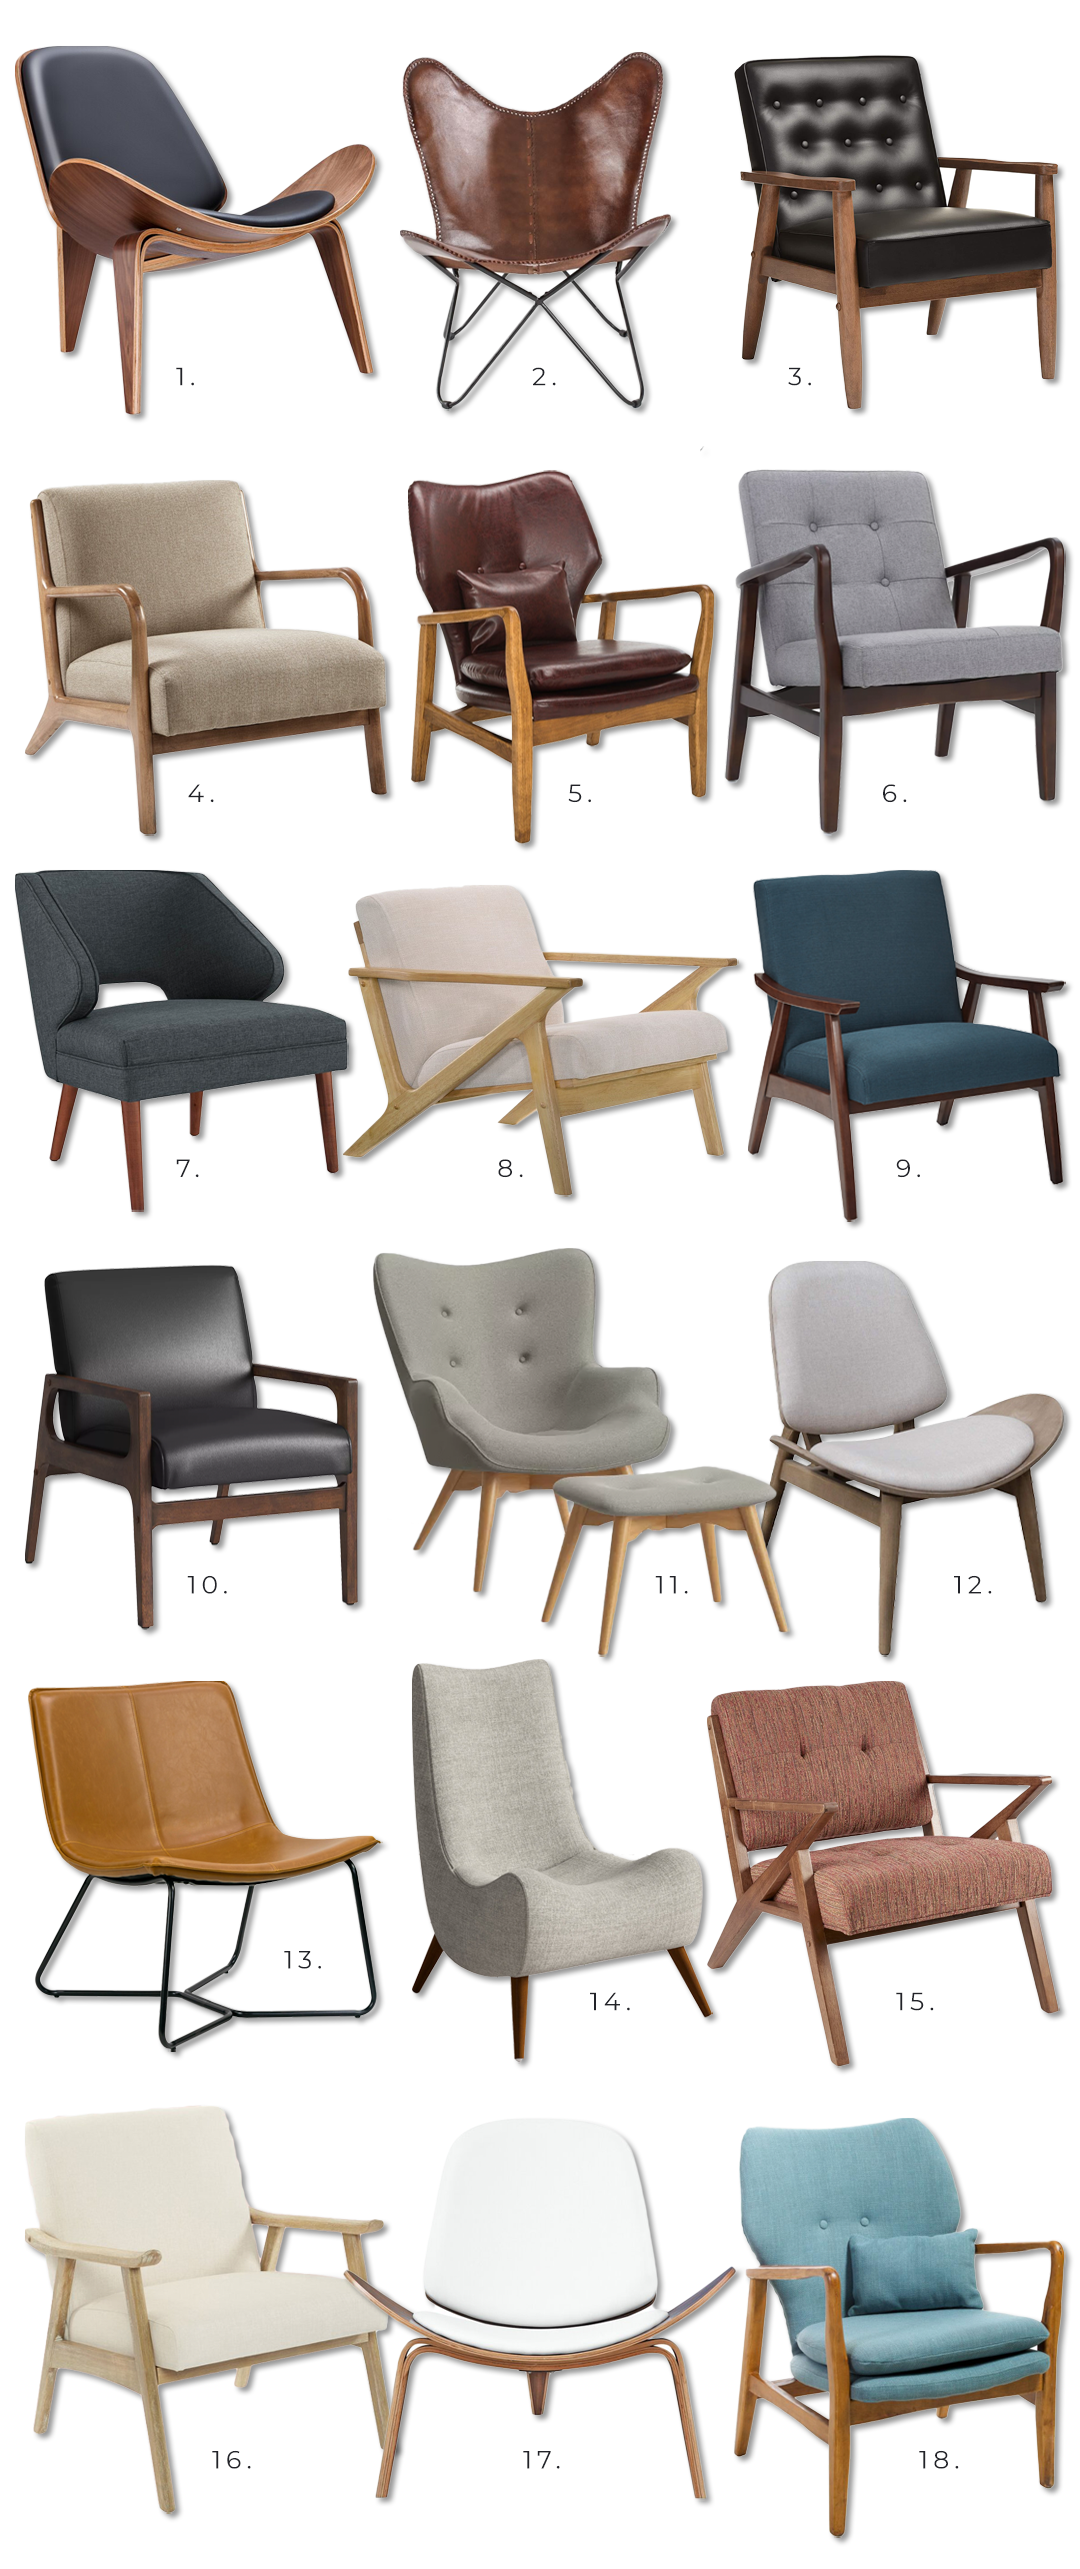 18 Gorgeous MCM Lounge Chairs Under $300 Each - Pursuit Decor. Mid Century Modern Lounge Chairs on a budget.